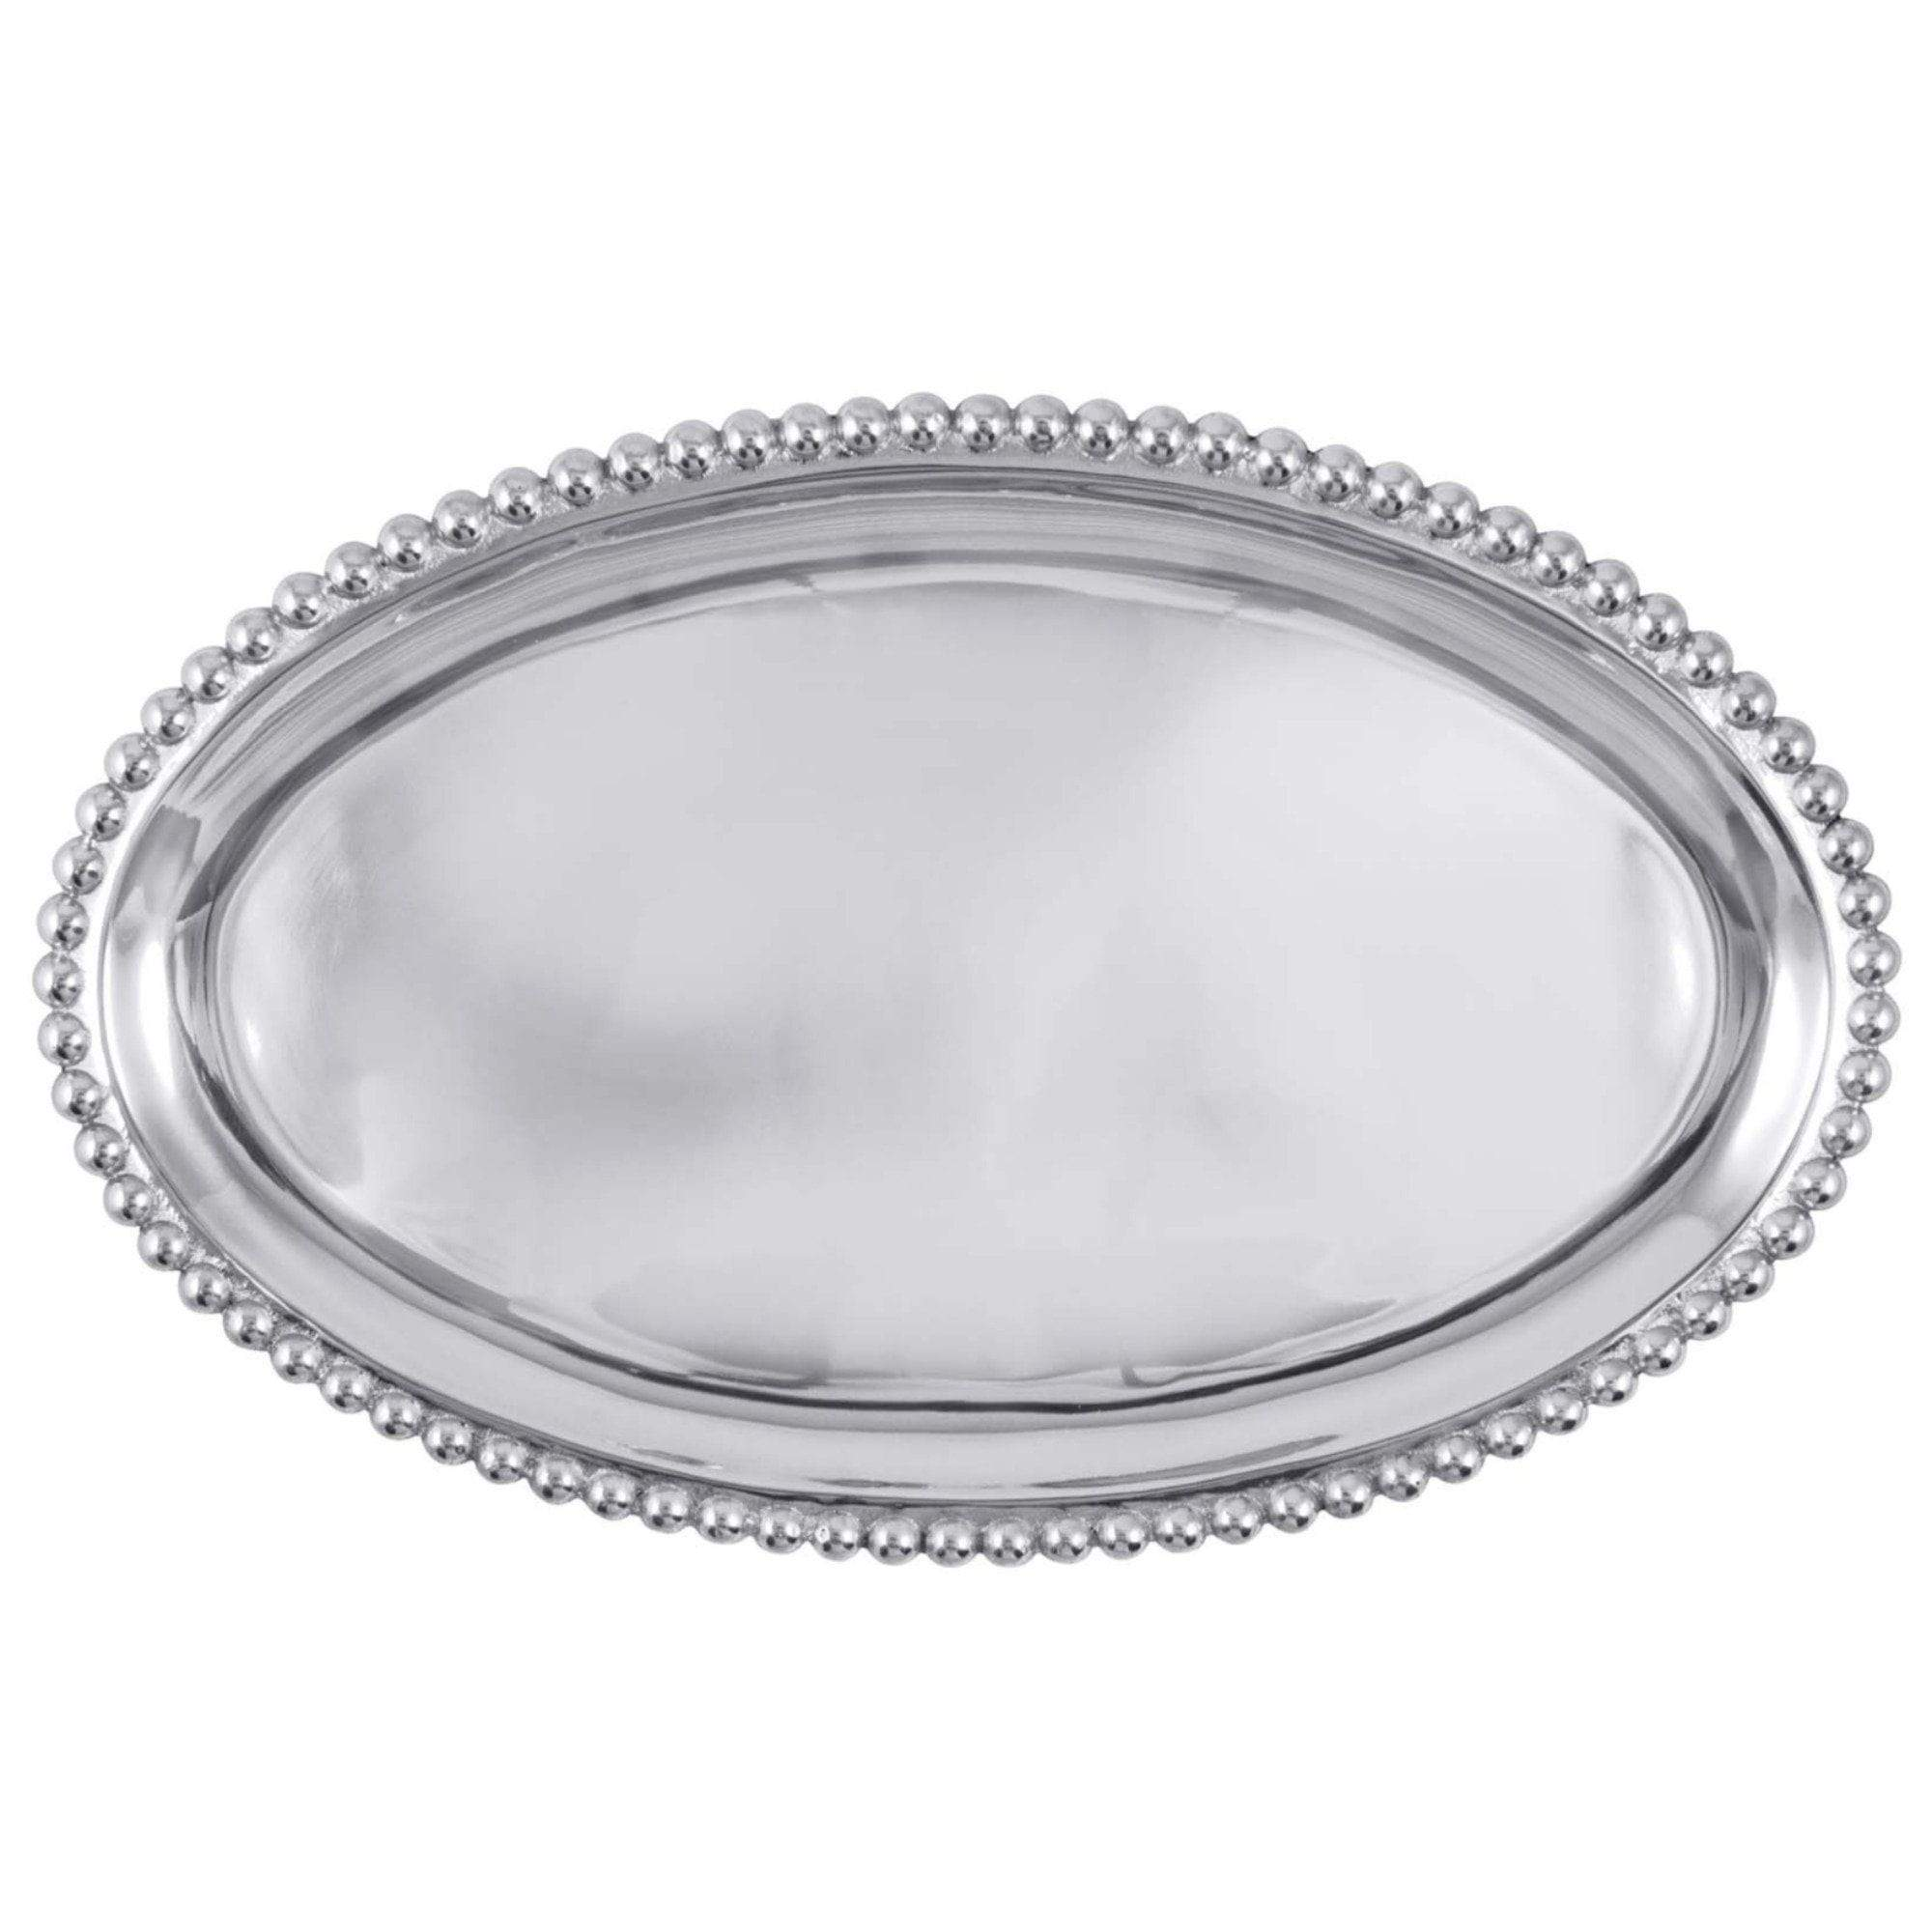 Mariposa Pearled Large Oval Platter